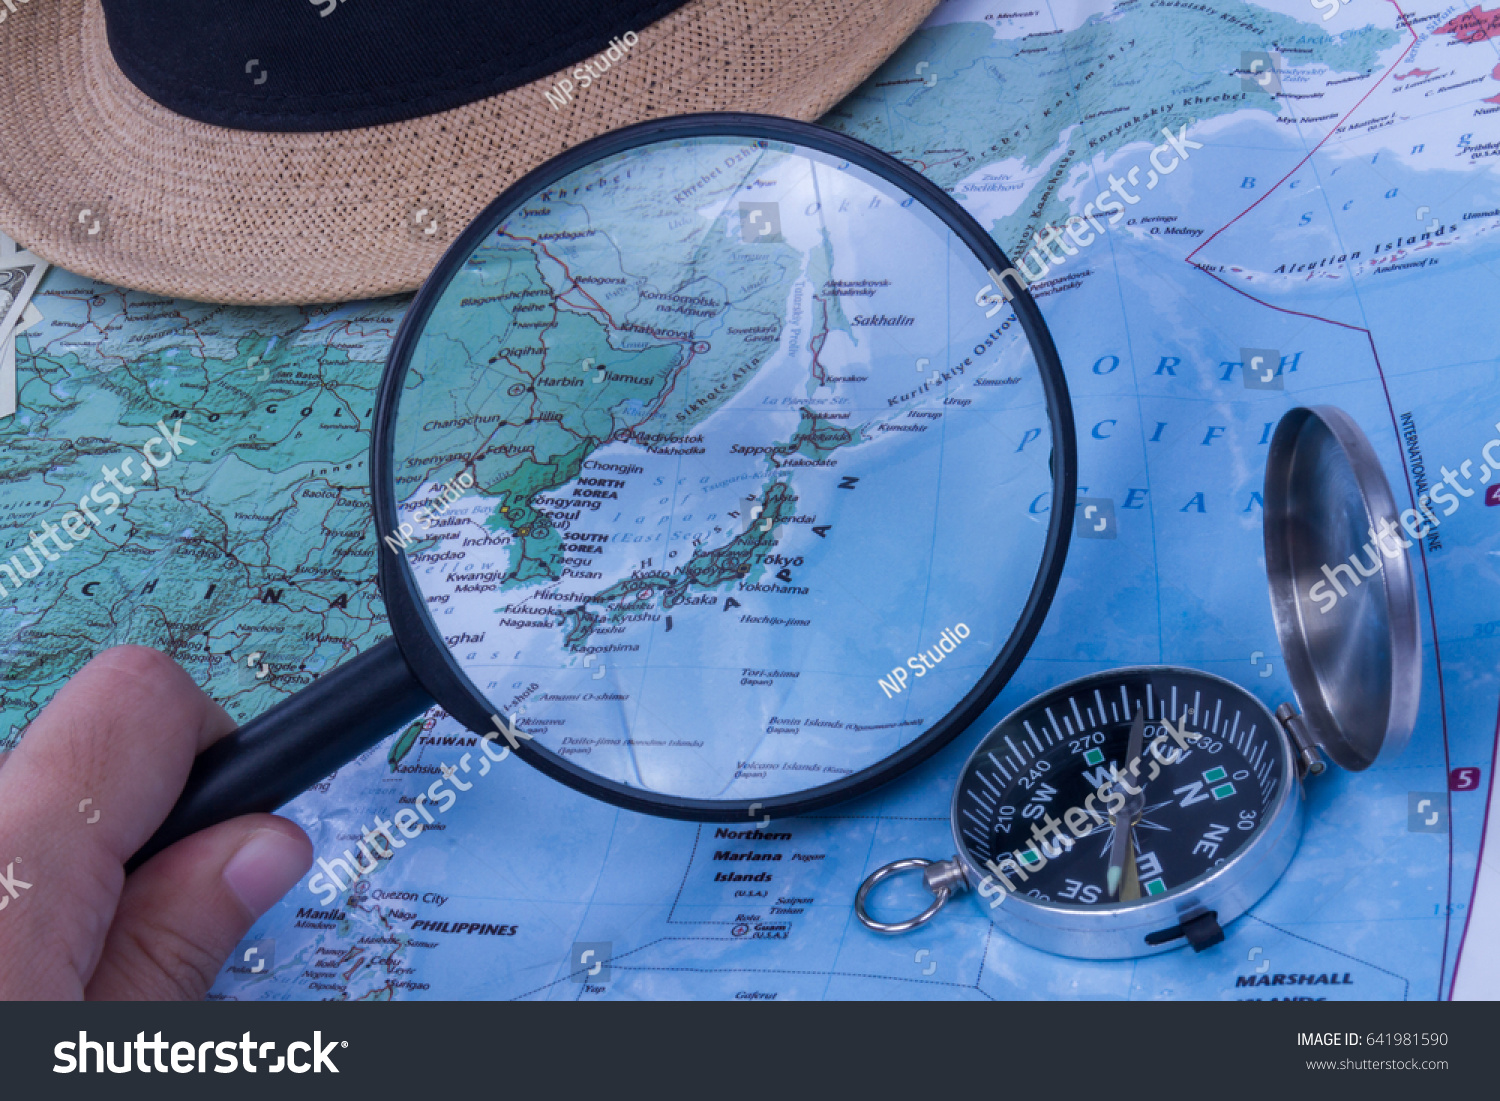 Magnifying glass closeup world map japan stock photo royalty free magnifying glass closeup world map japan stock photo royalty free 641981590 shutterstock gumiabroncs Image collections